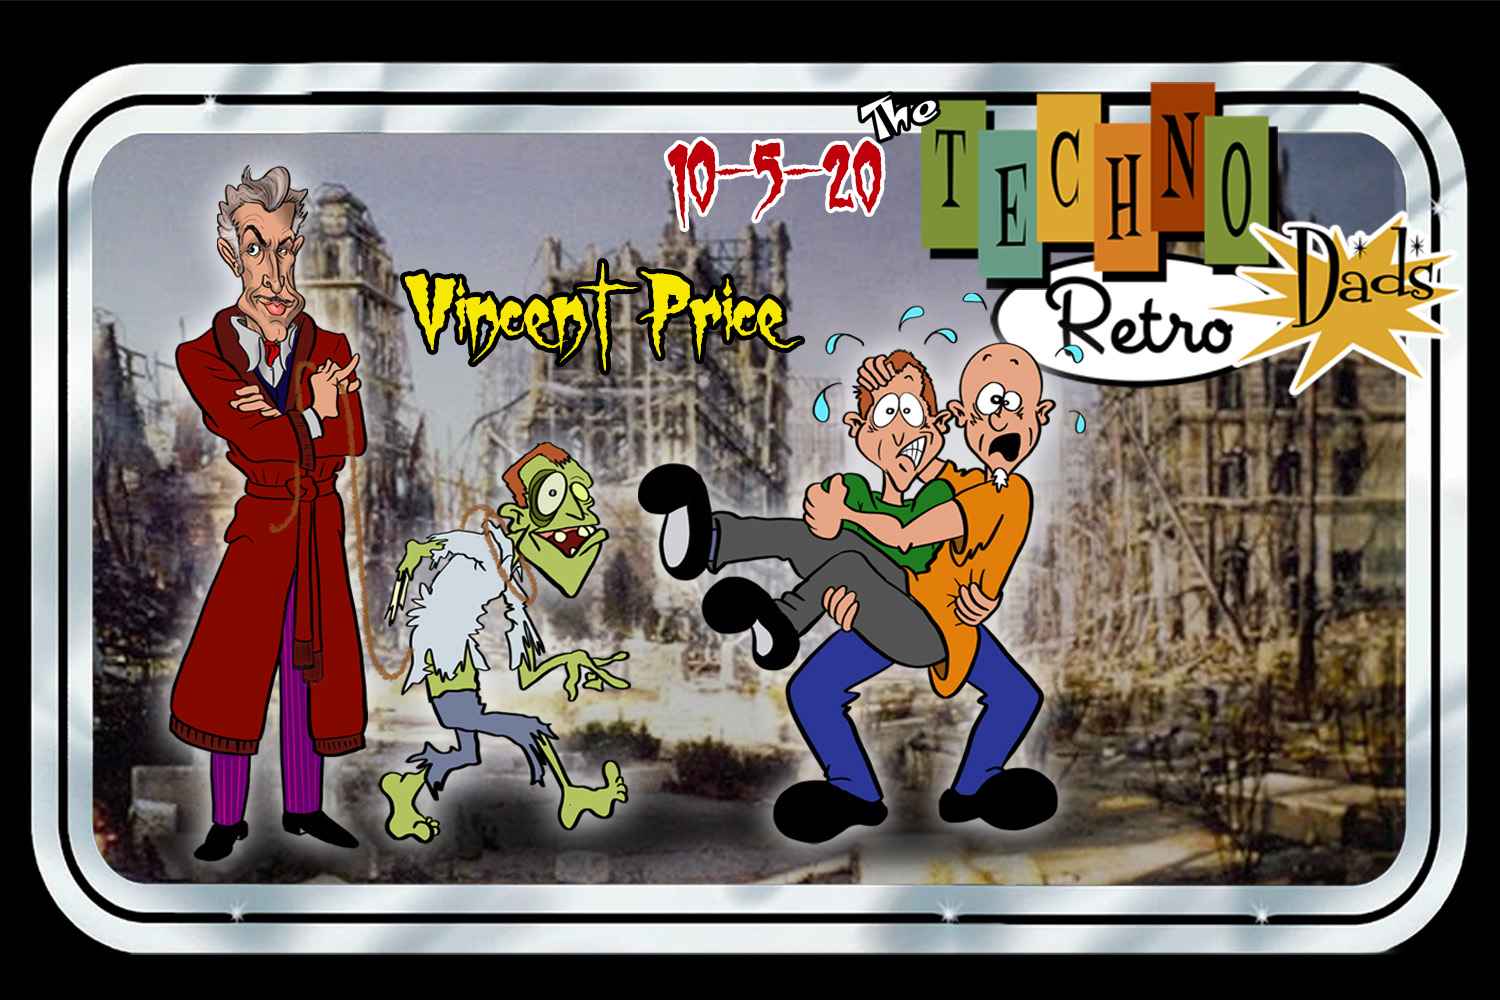 TechnoRetro Dads: The Price is Fright